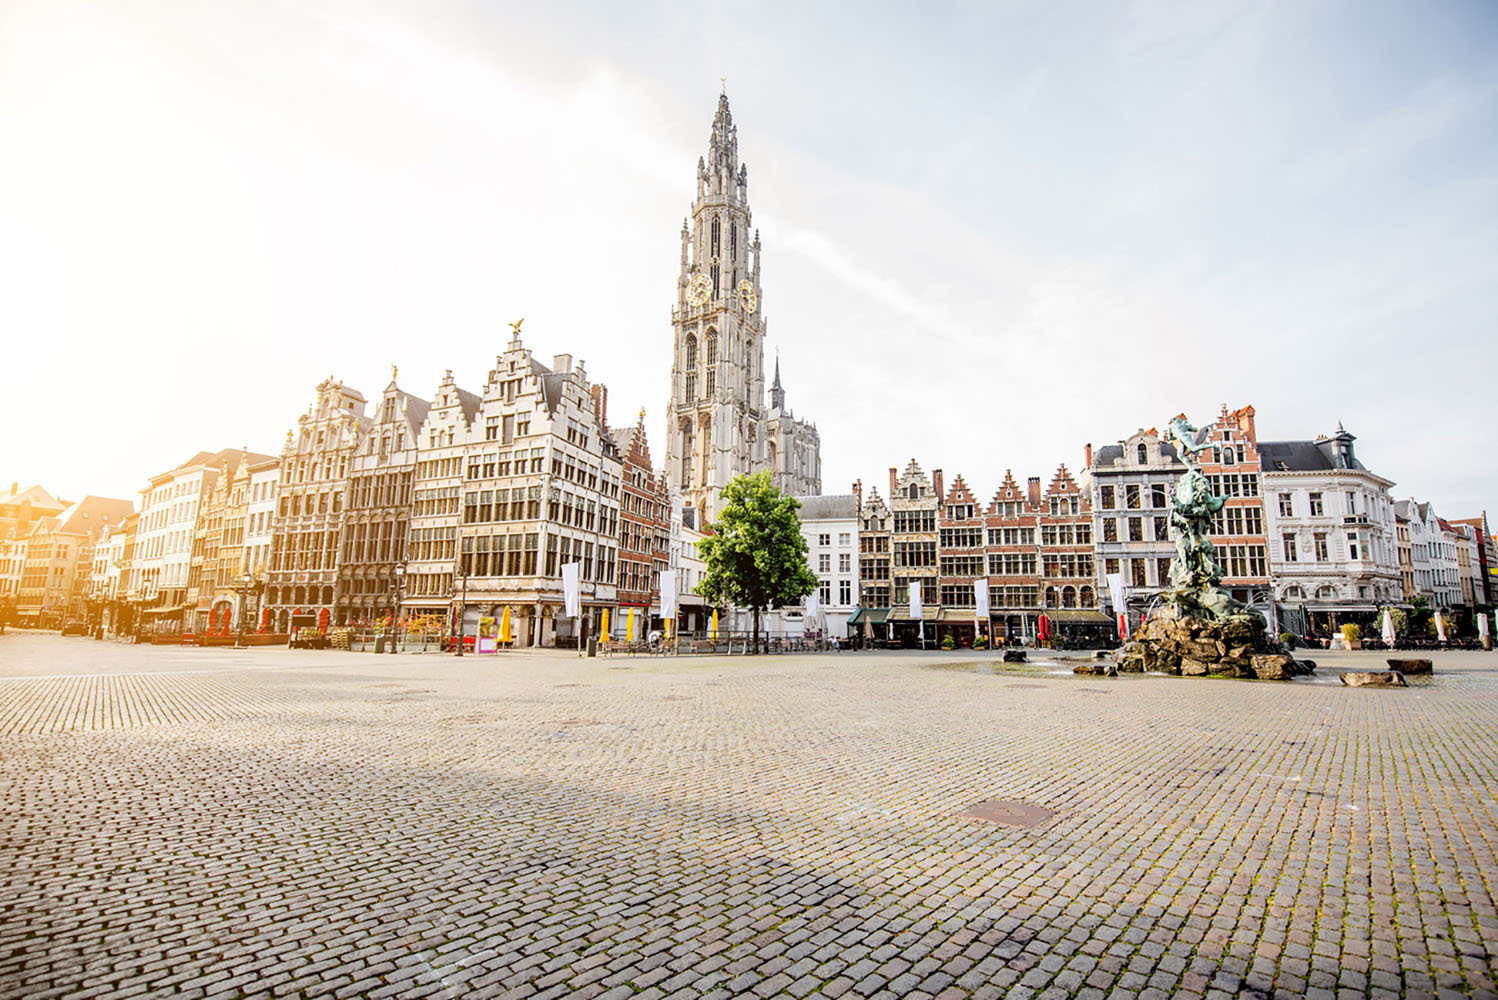 Historic buildings and a church tower in Antwerp, Belgium.